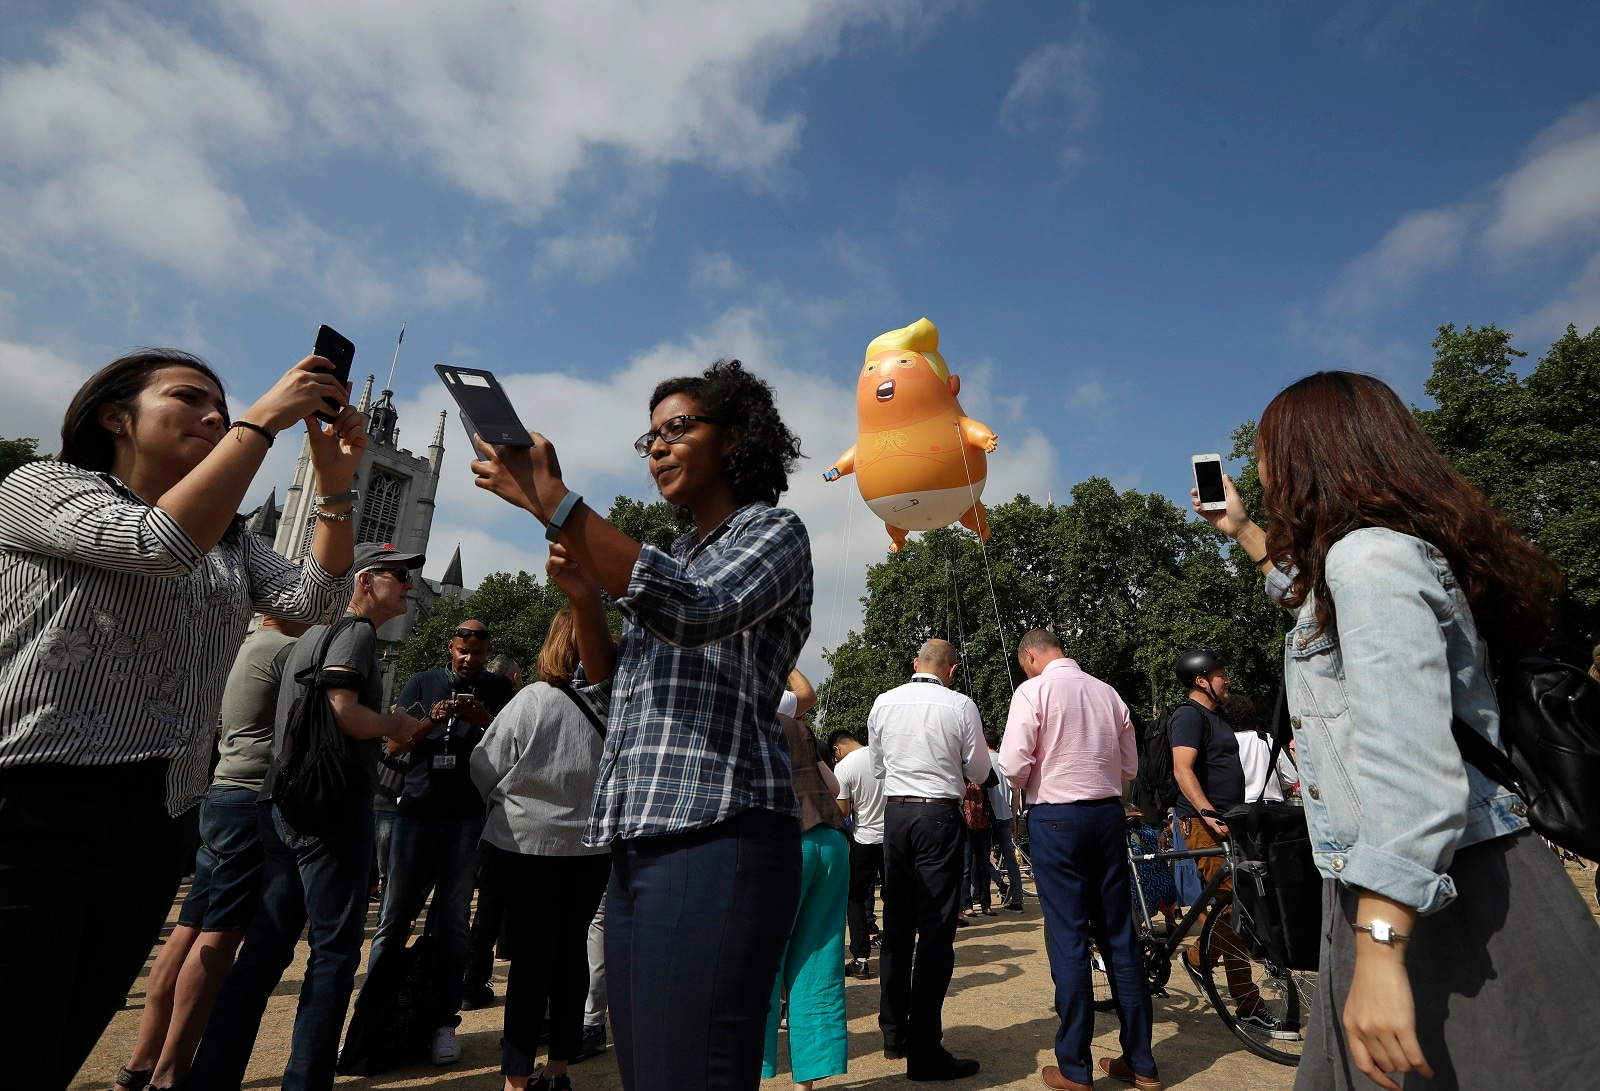 People take photos of a six-meter high cartoon baby blimp of US President Donald Trump is flown as a protest against his visit, in Parliament Square in London, England, on July 13, 2018. (AP Photo/Matt Dunham)